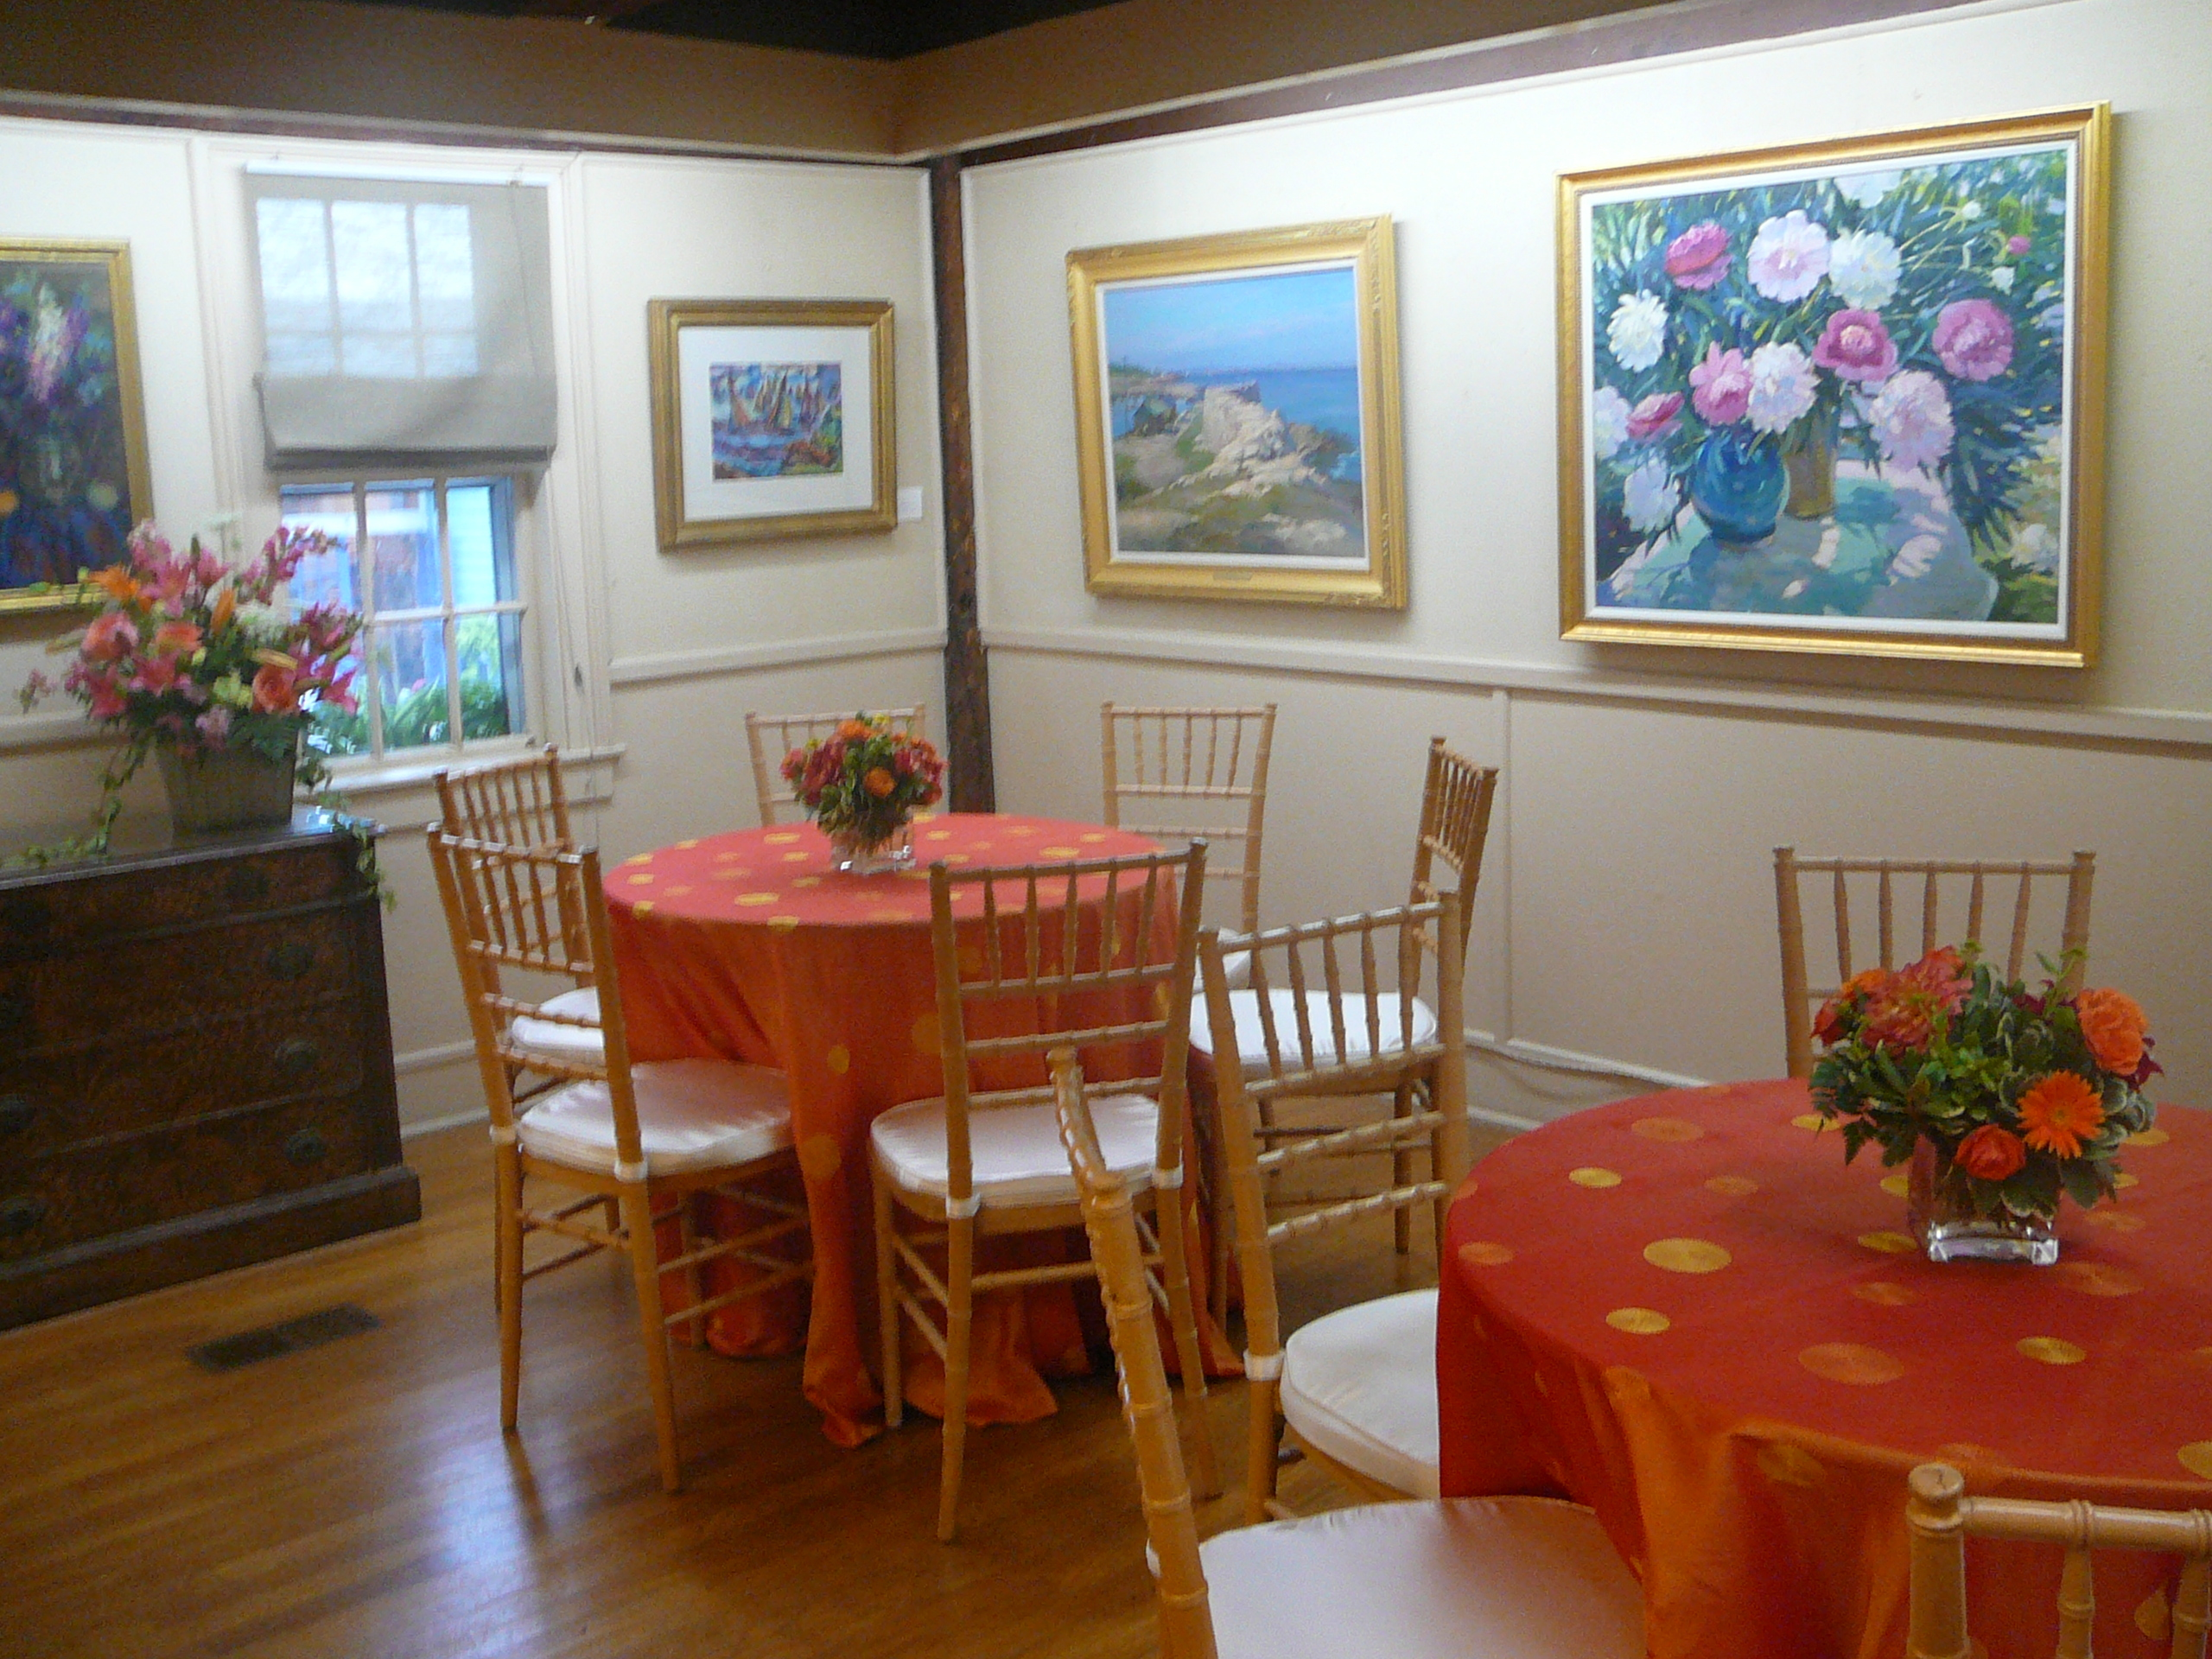 Flowers & Decor, Tables & Seating, Color, Tables, Rockport art association, Tapas